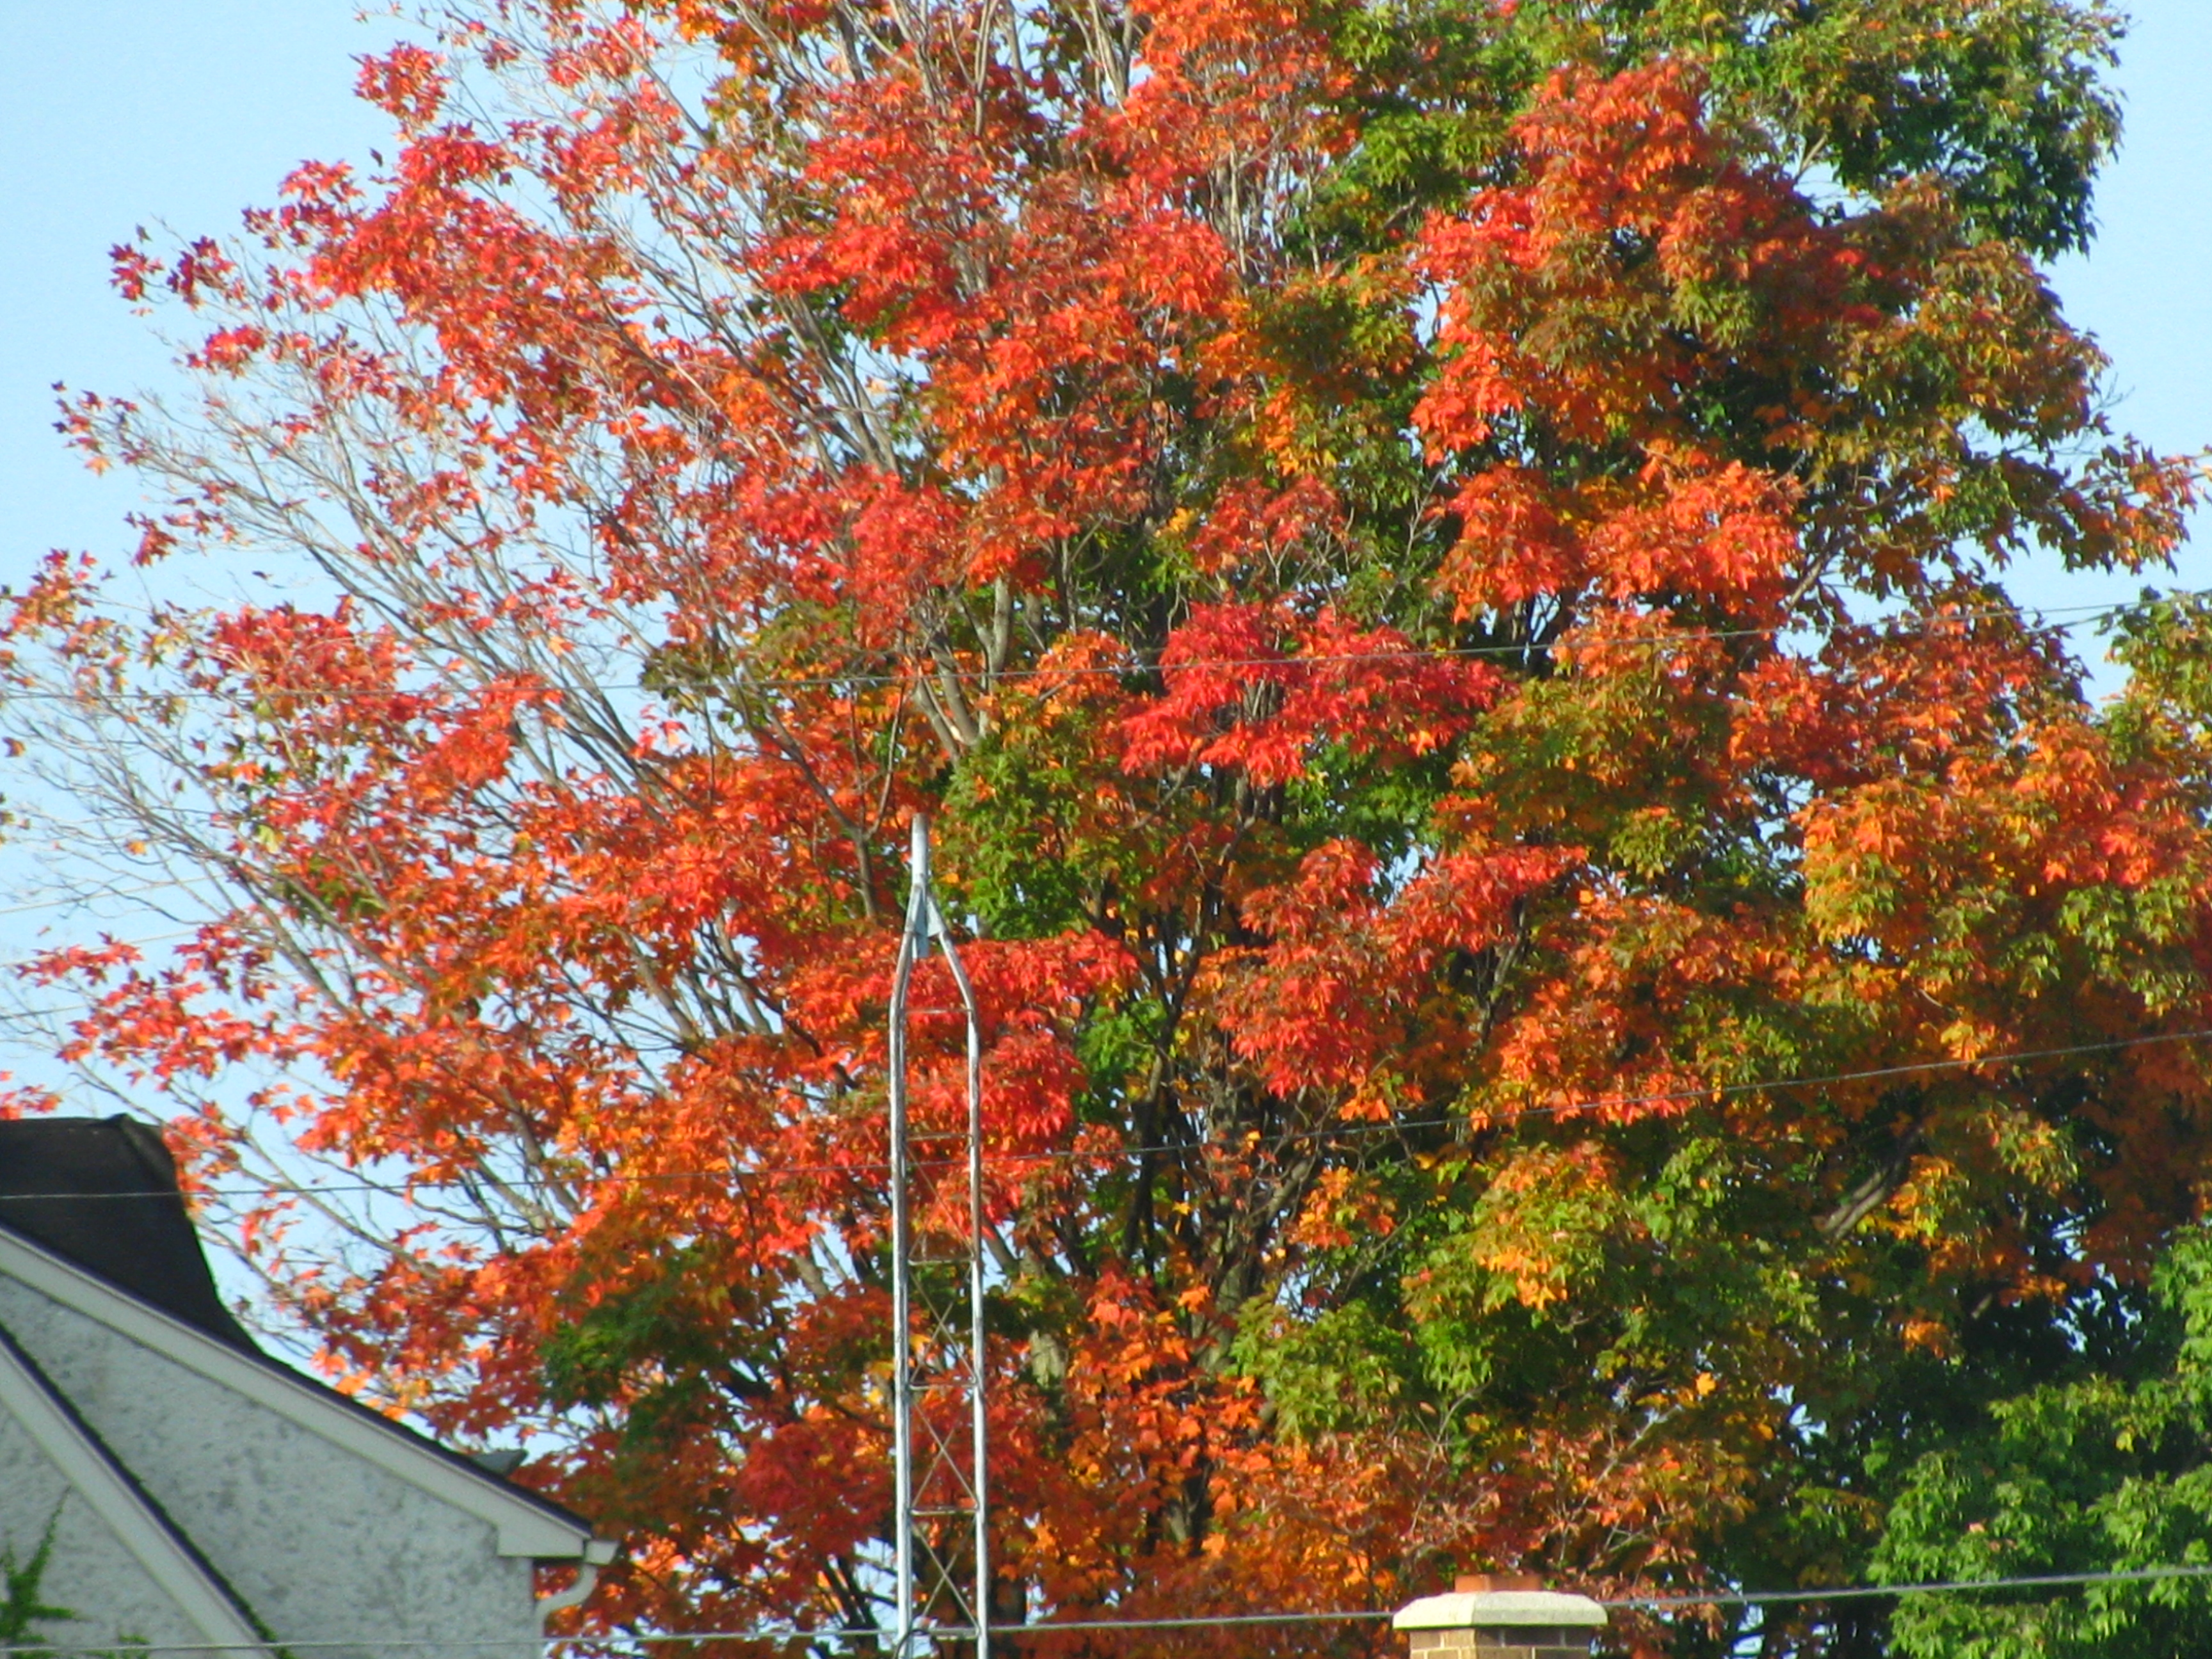 Changing leaves photo